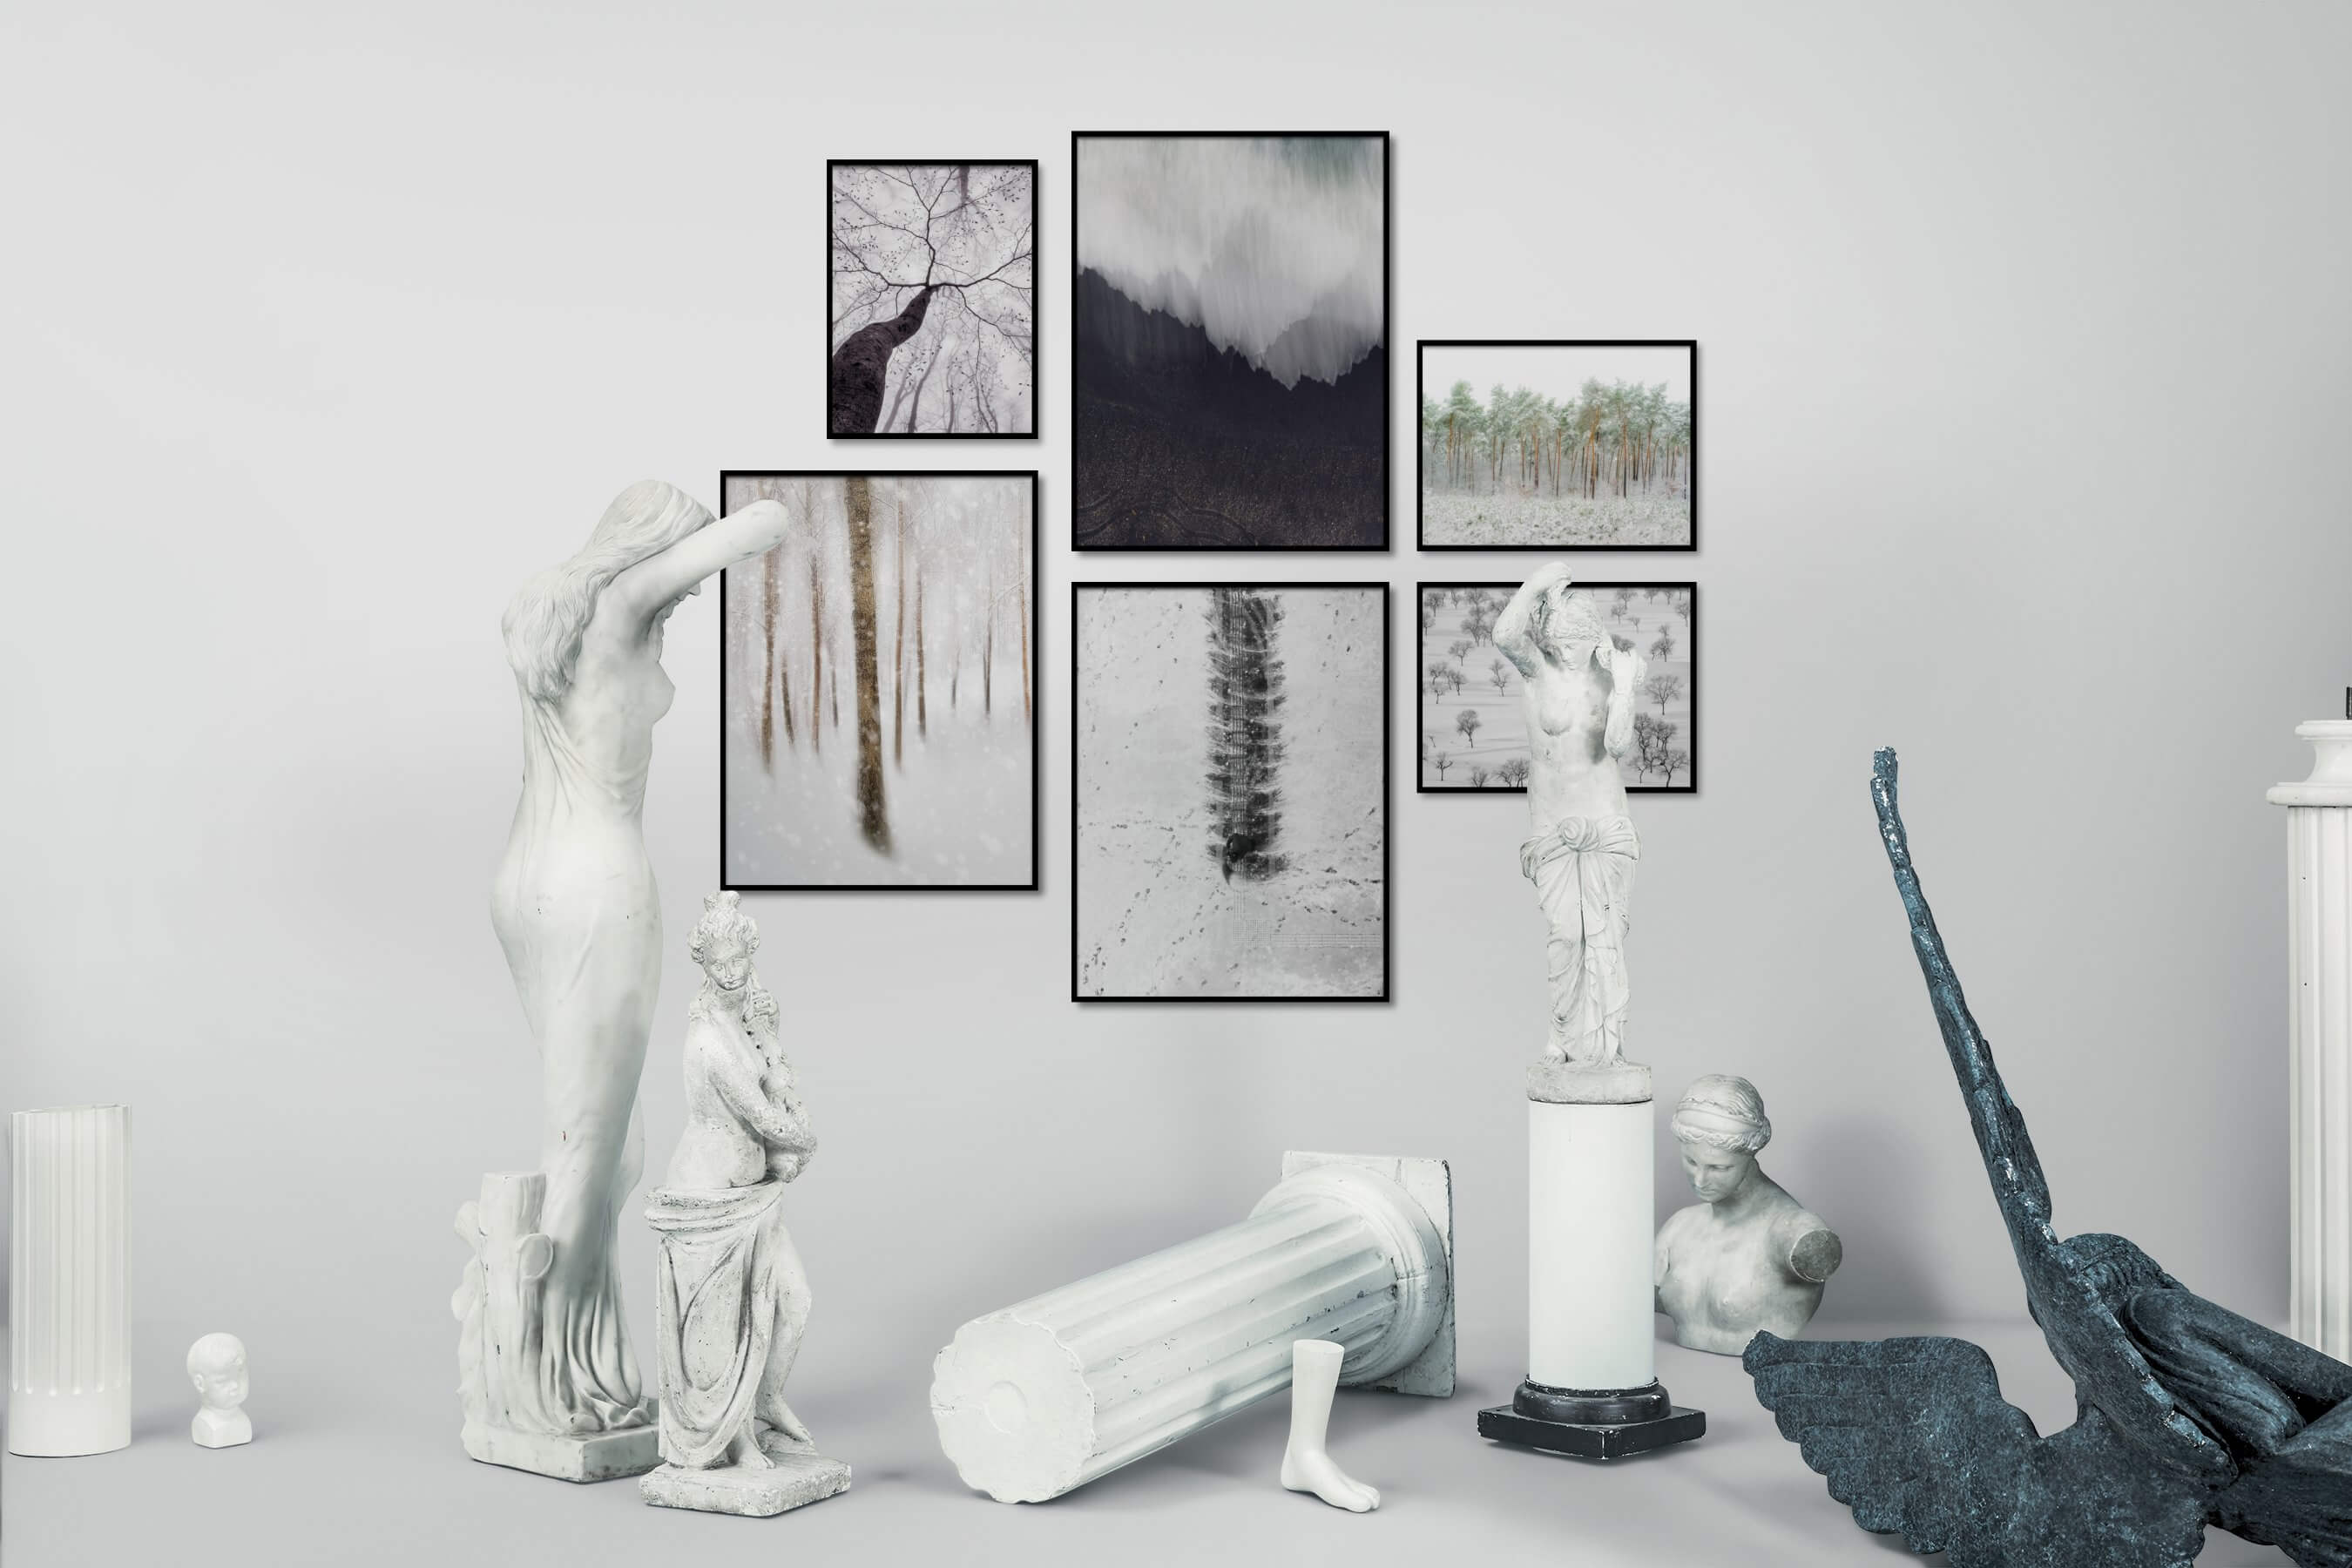 Gallery wall idea with six framed pictures arranged on a wall depicting For the Moderate, Nature, For the Minimalist, Beach & Water, Black & White, Bright Tones, and Mindfulness